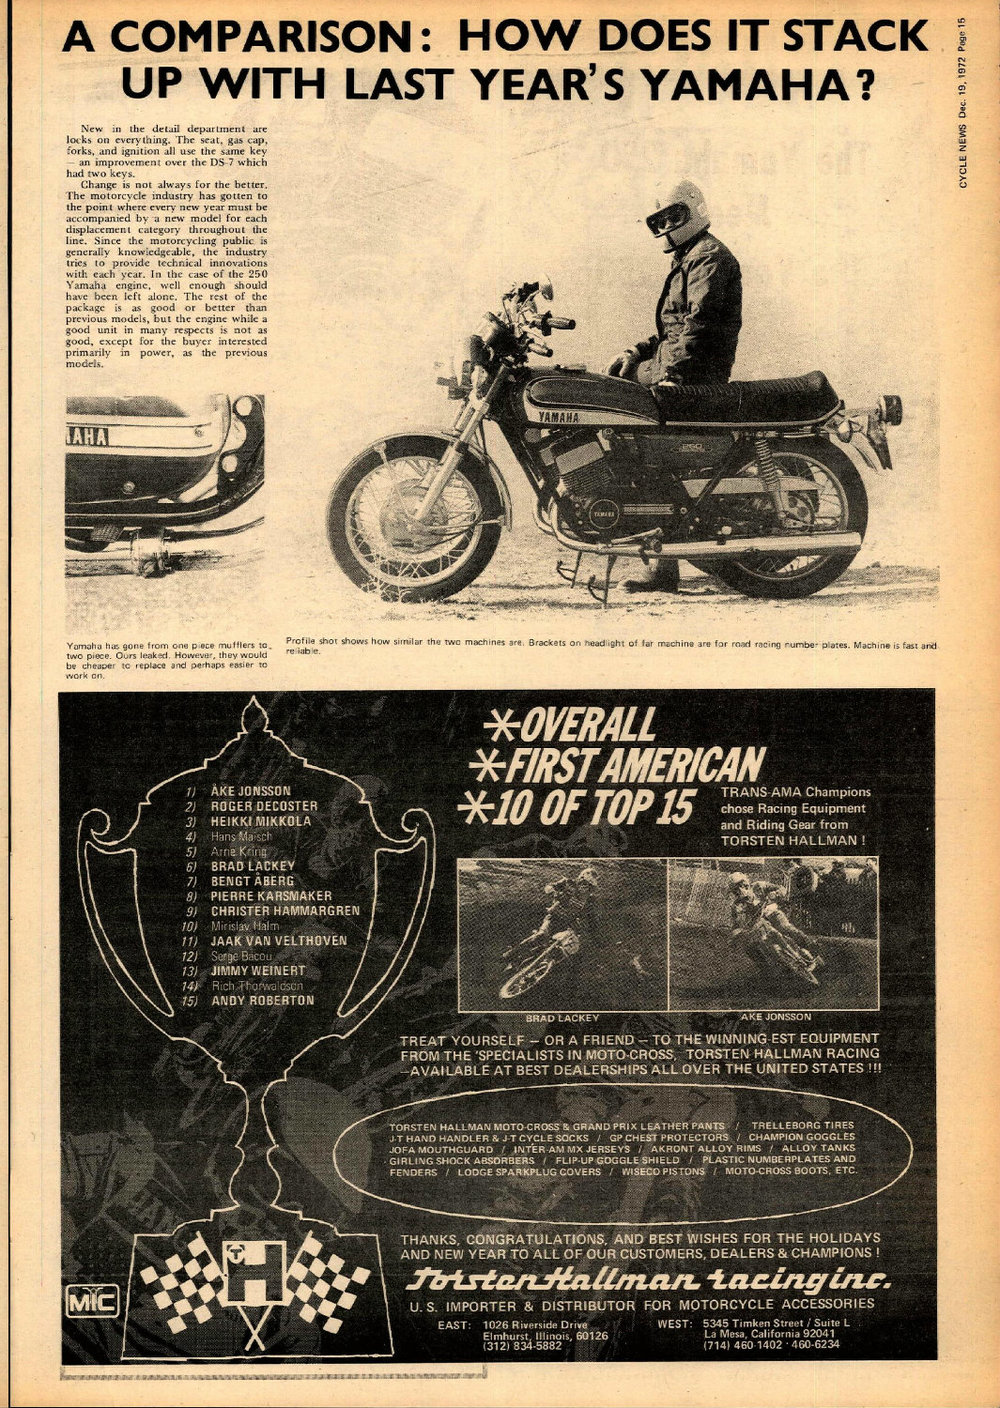 1973 Yamaha RD250 vs DS-7 02.jpg